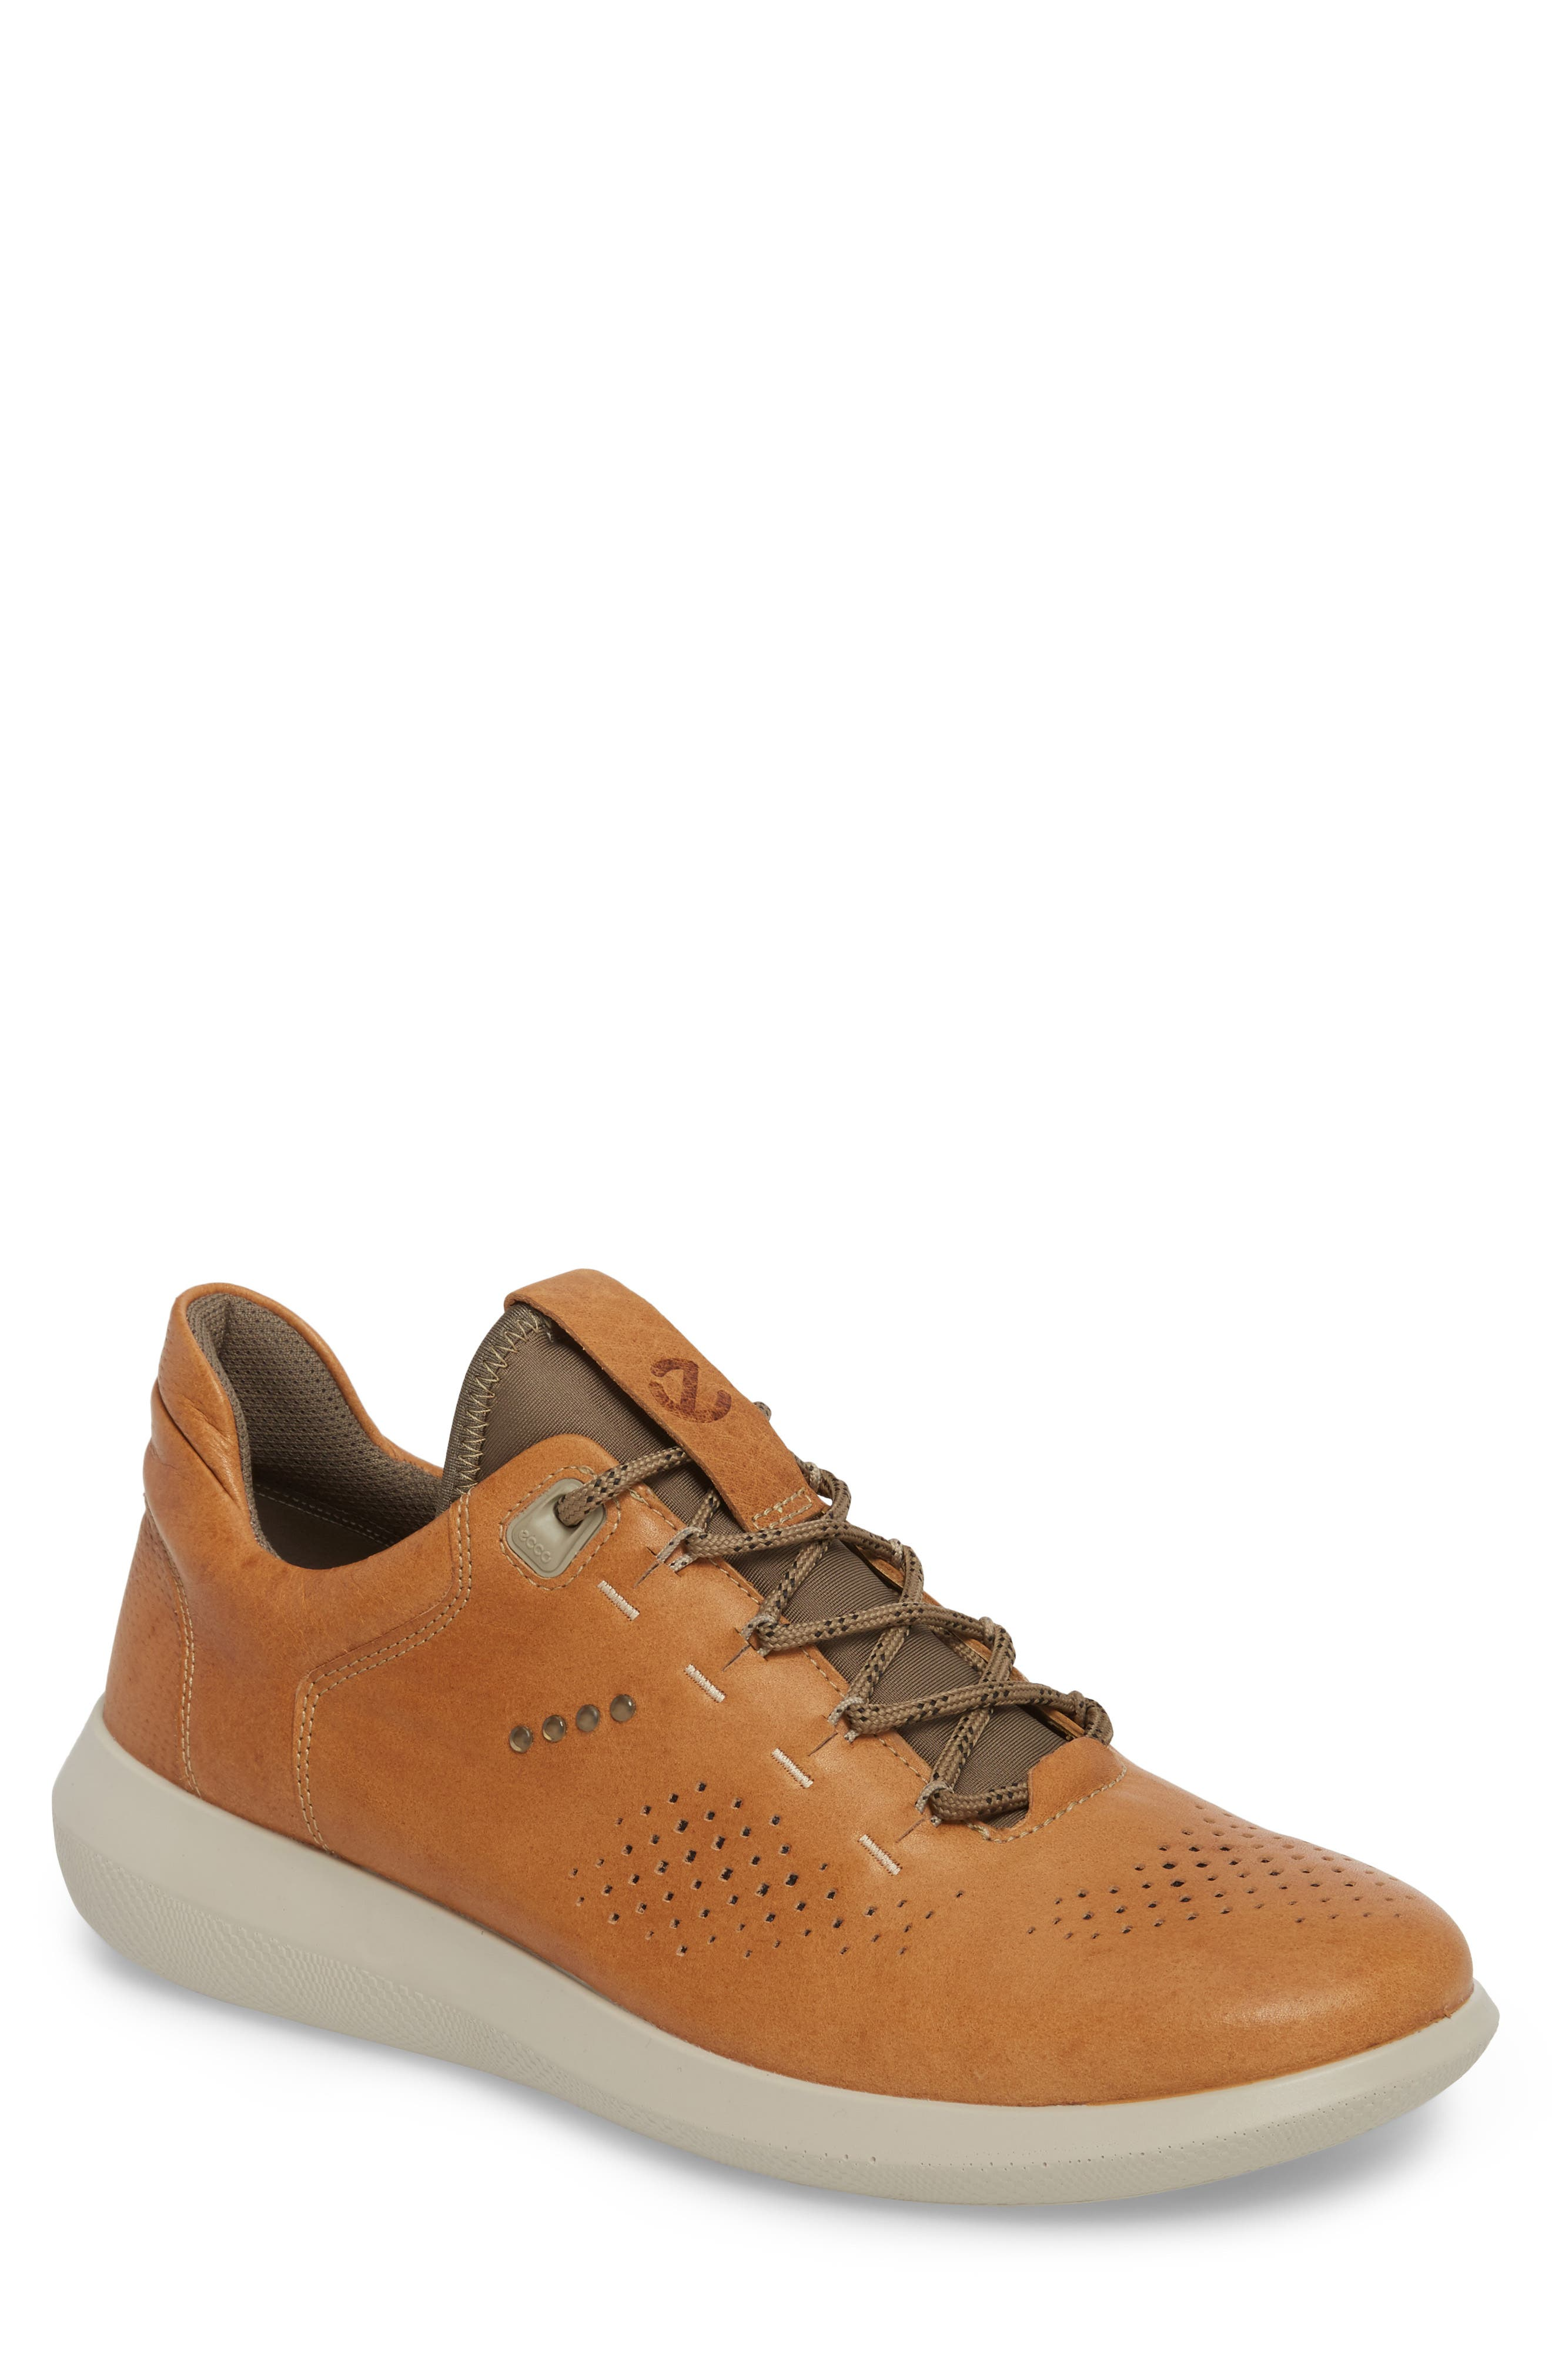 Scinapse Sneaker,                         Main,                         color, Brown Leather